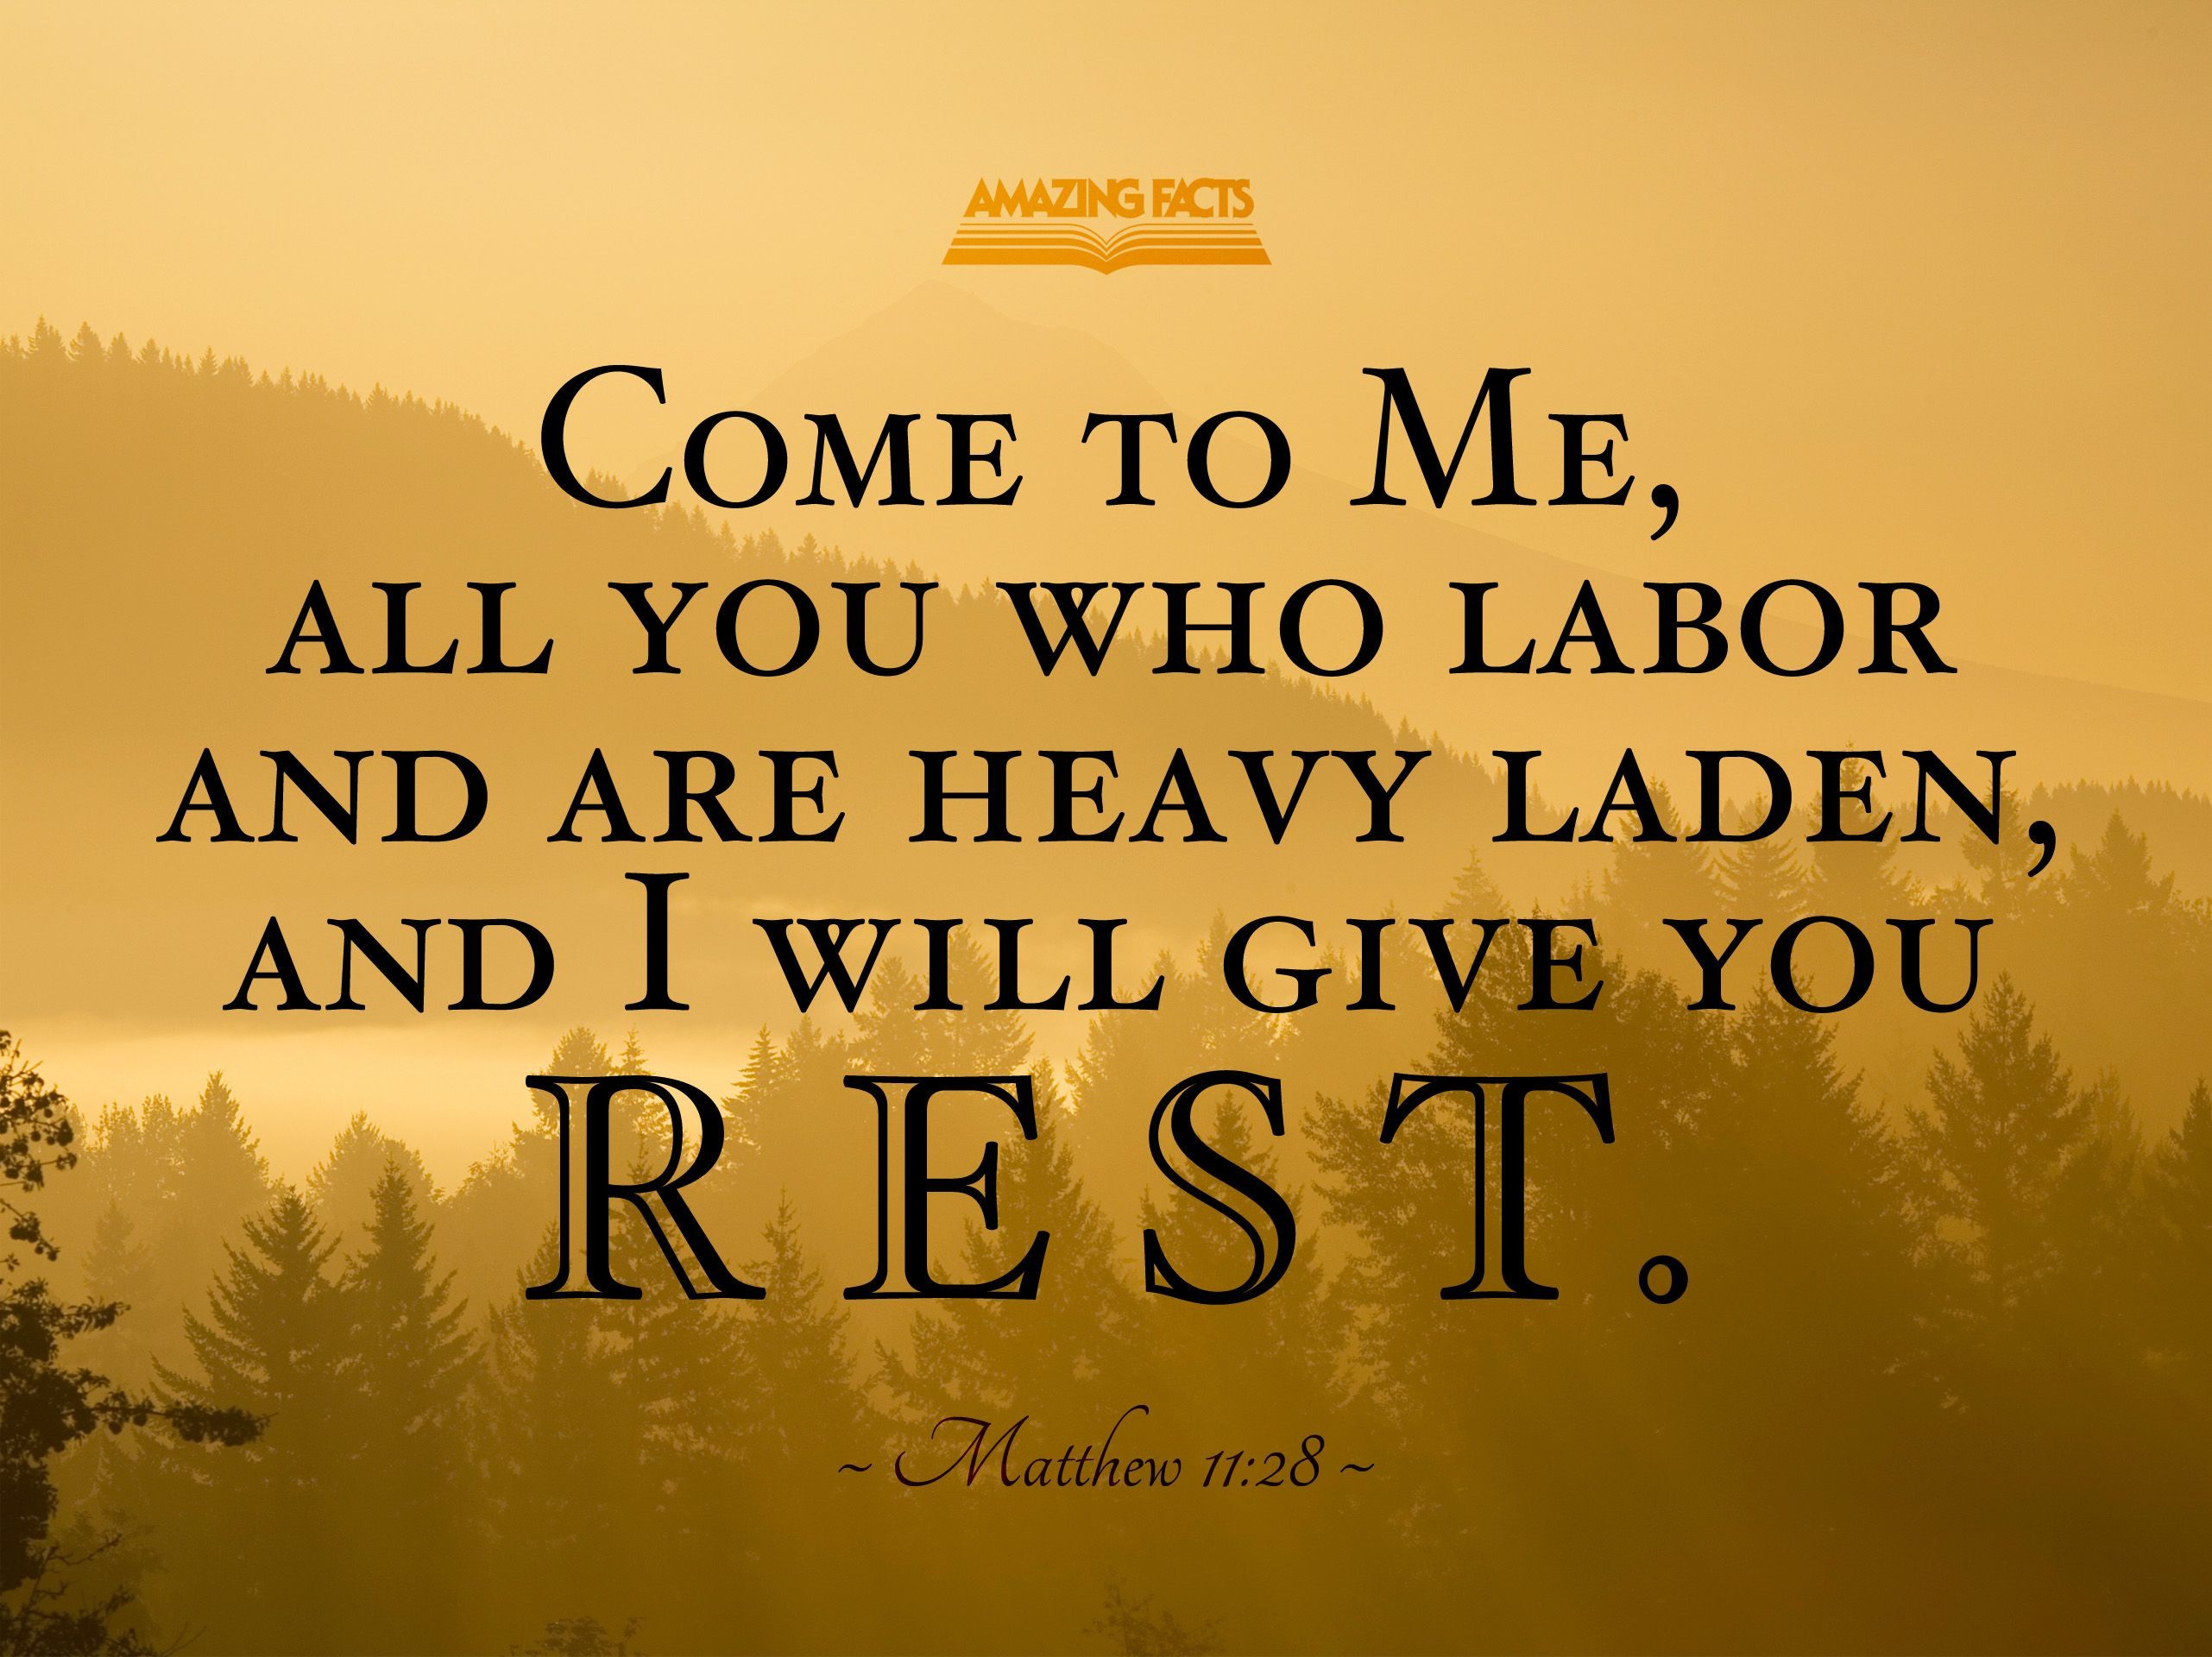 Will Heavy And You Me Are All Labor Come Who I And You Rest Laden Give 1